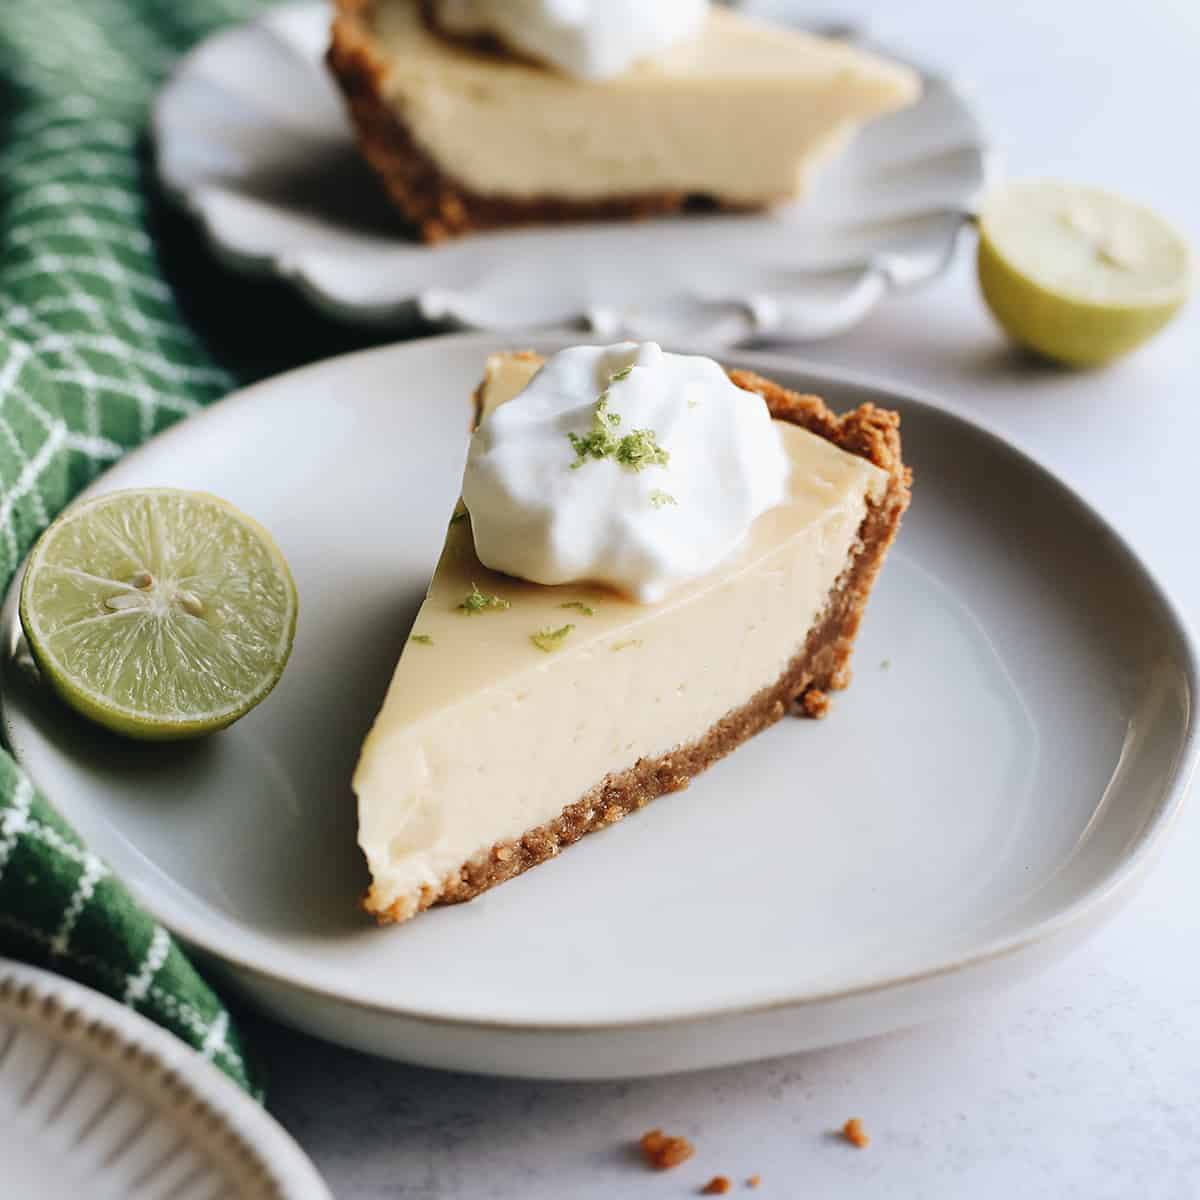 a slice of Key Lime Pie on a plate with whipped cream on top